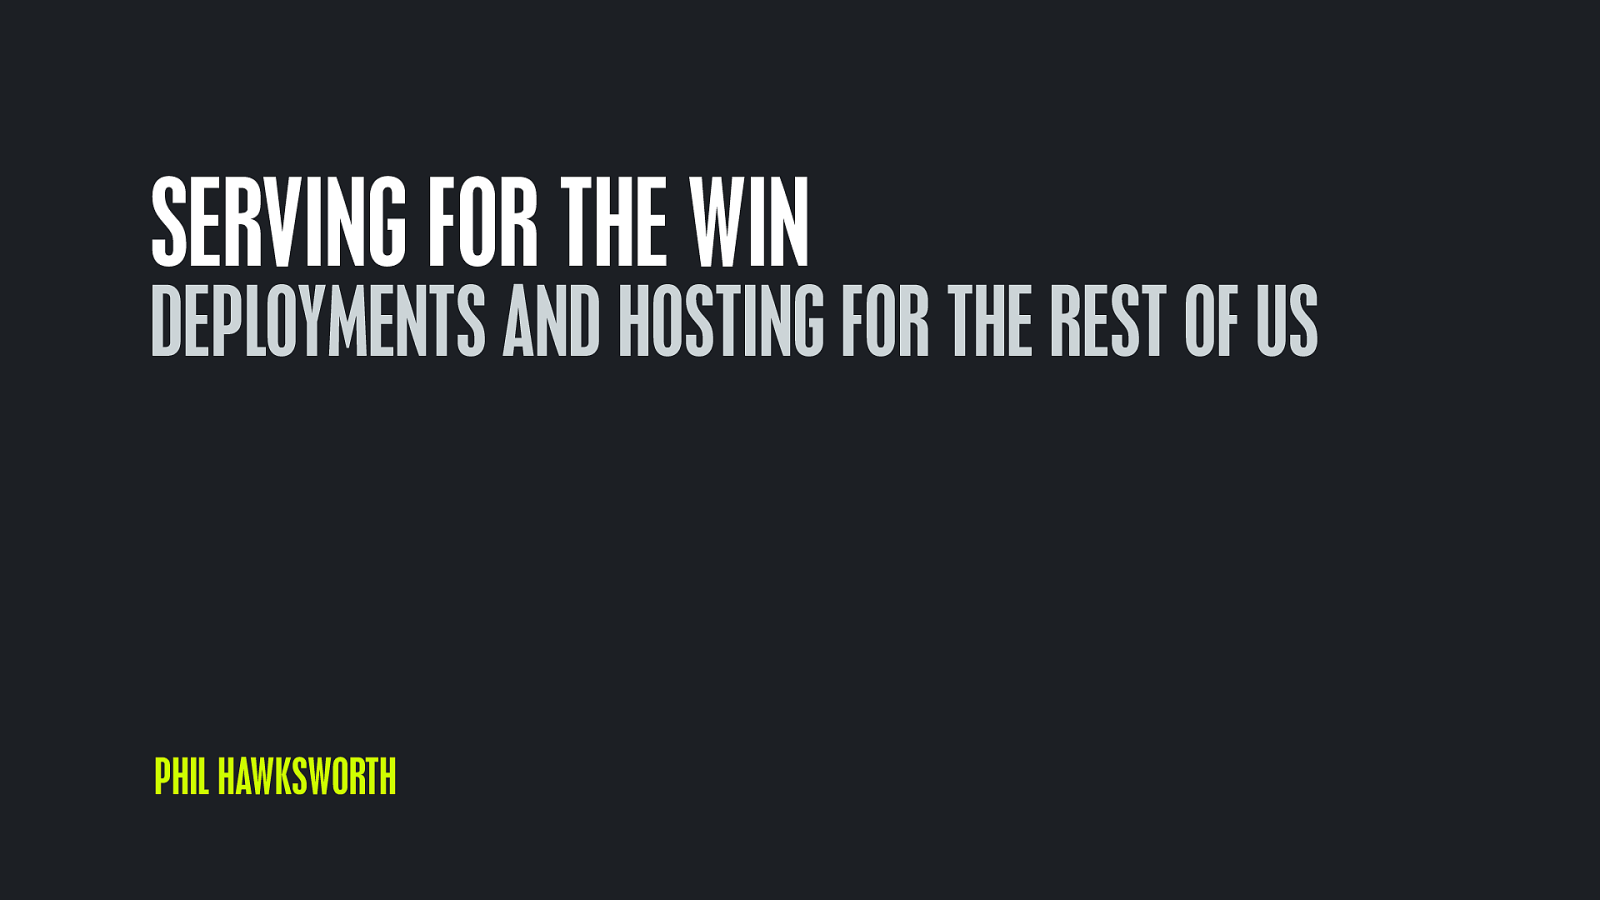 Serving for the win - Deploys and hosting for the rest of us by Phil Hawksworth